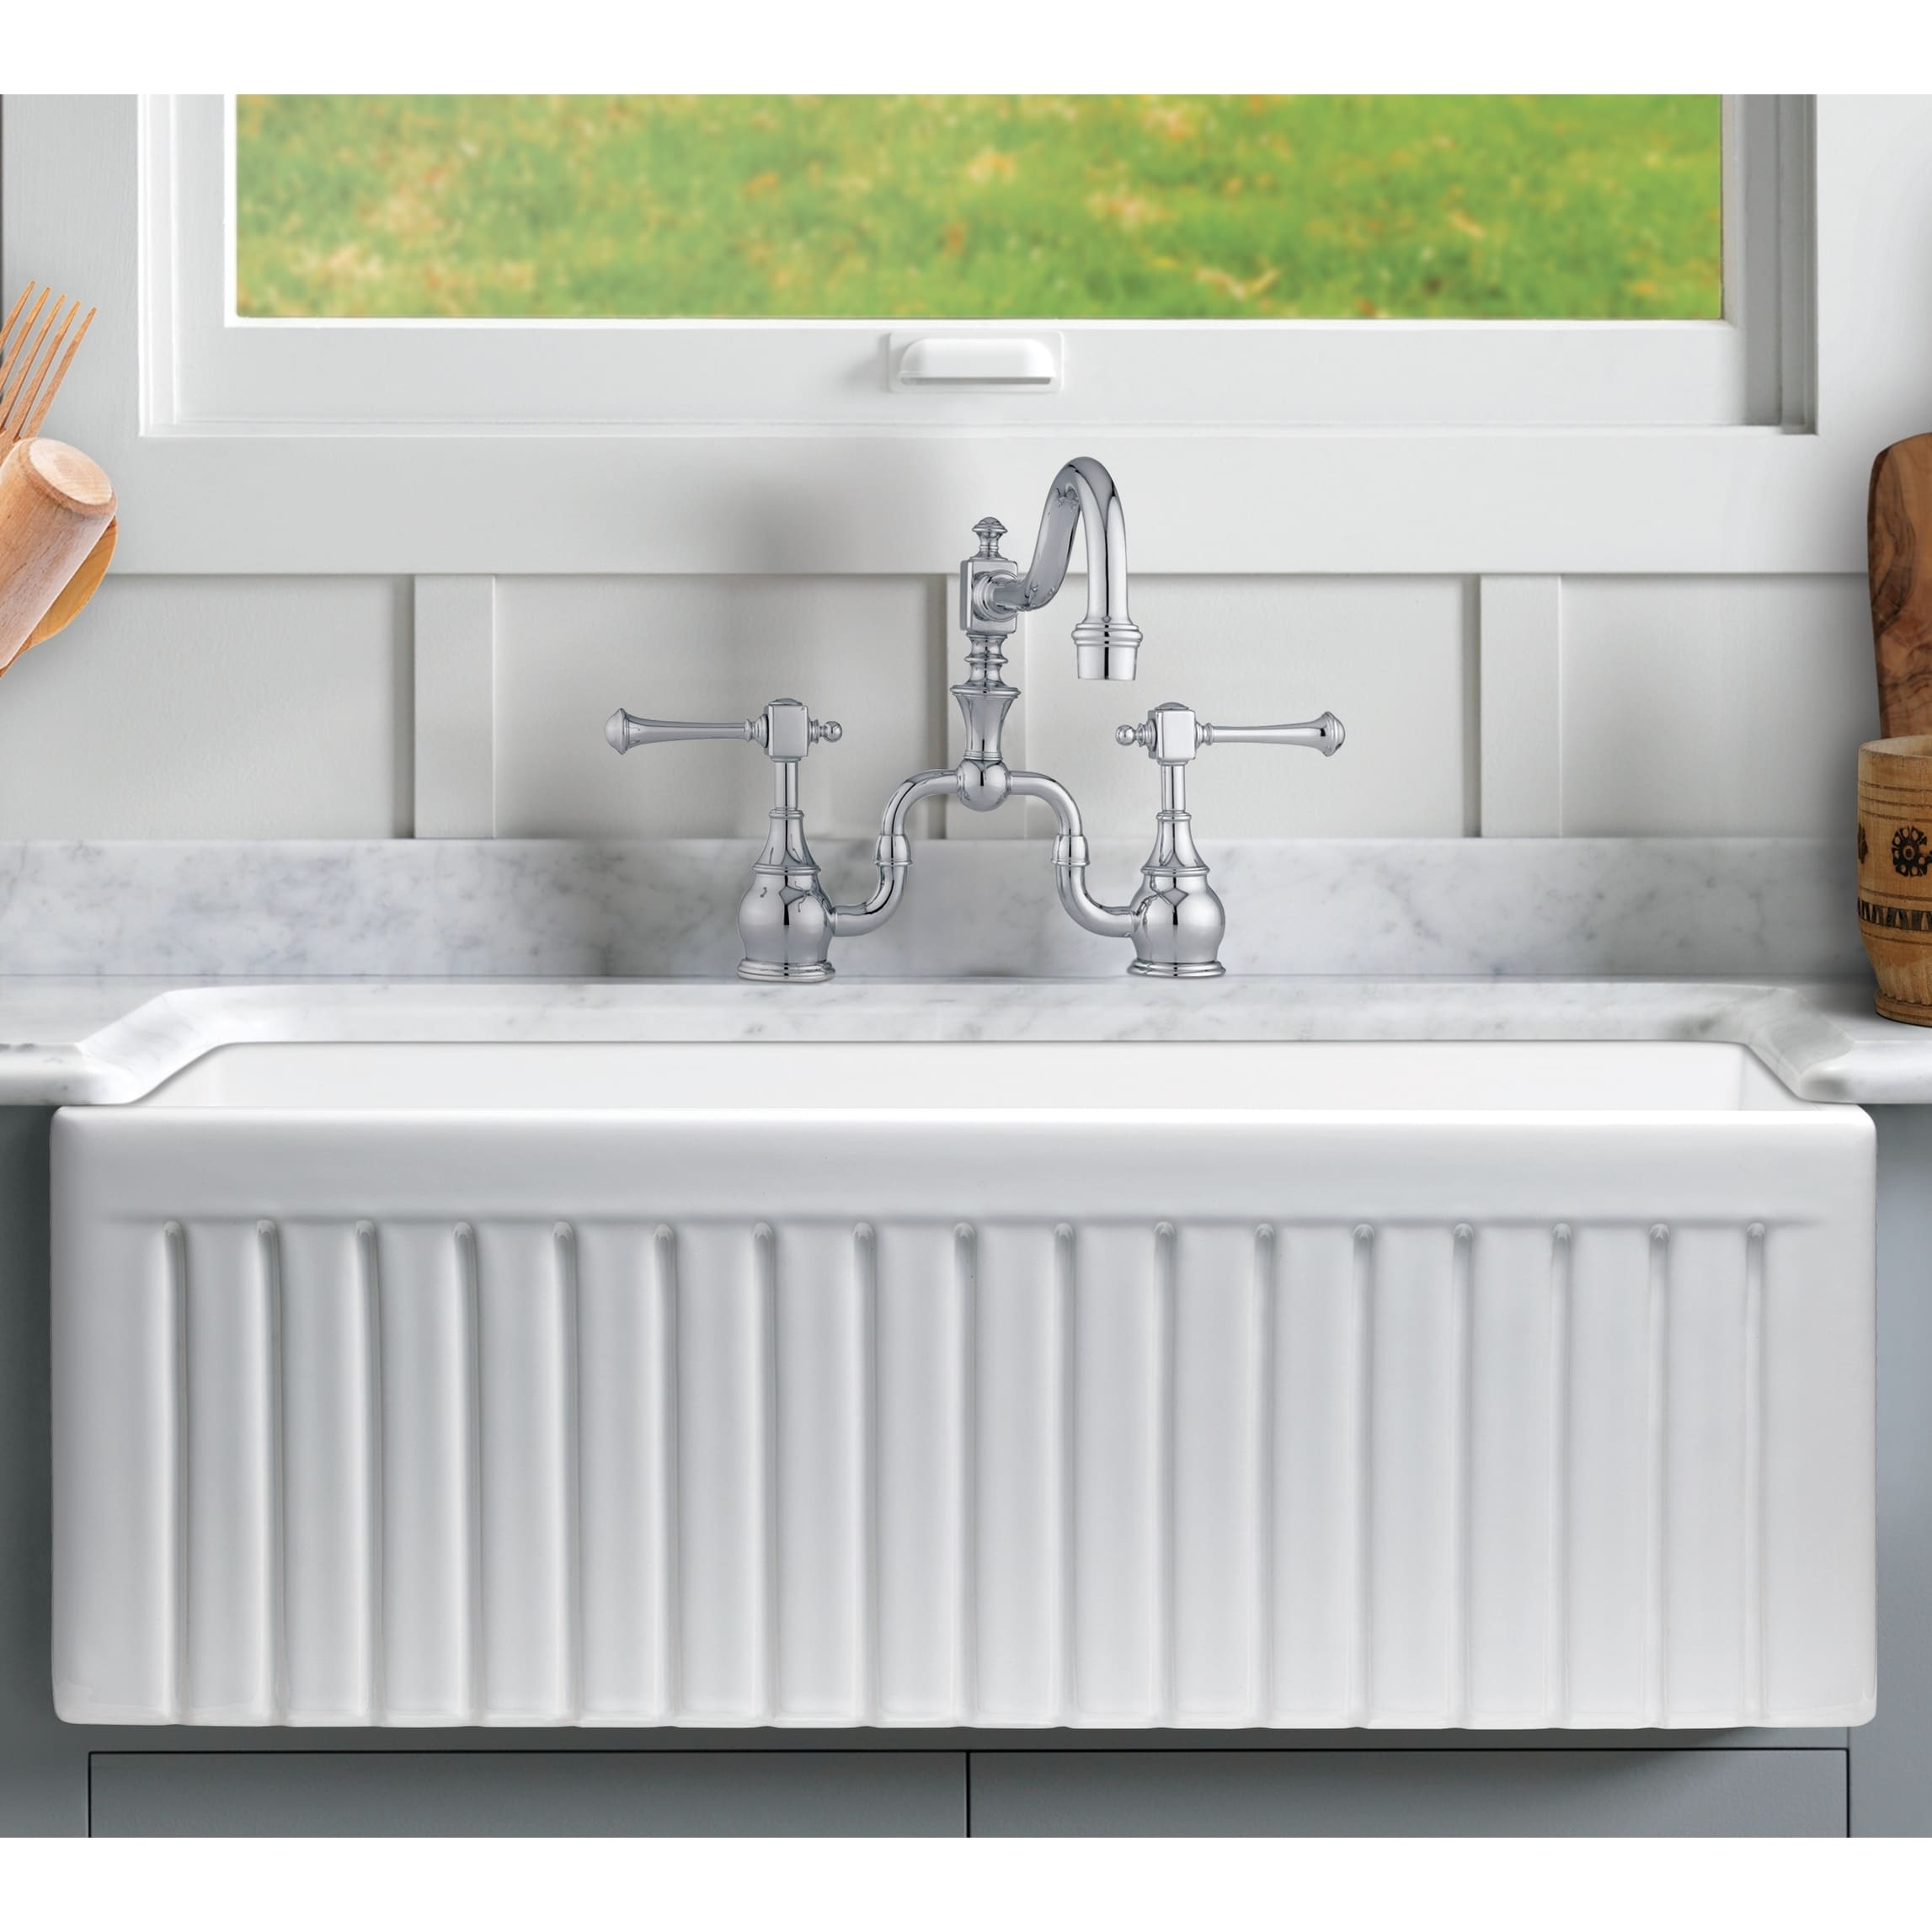 Sutton Place Reversible Farmhouse Fireclay 33 in. Single Bowl Kitchen Sink in White with Grid and Strainer - Walmart.com & Sutton Place Reversible Farmhouse Fireclay 33 in. Single Bowl ...